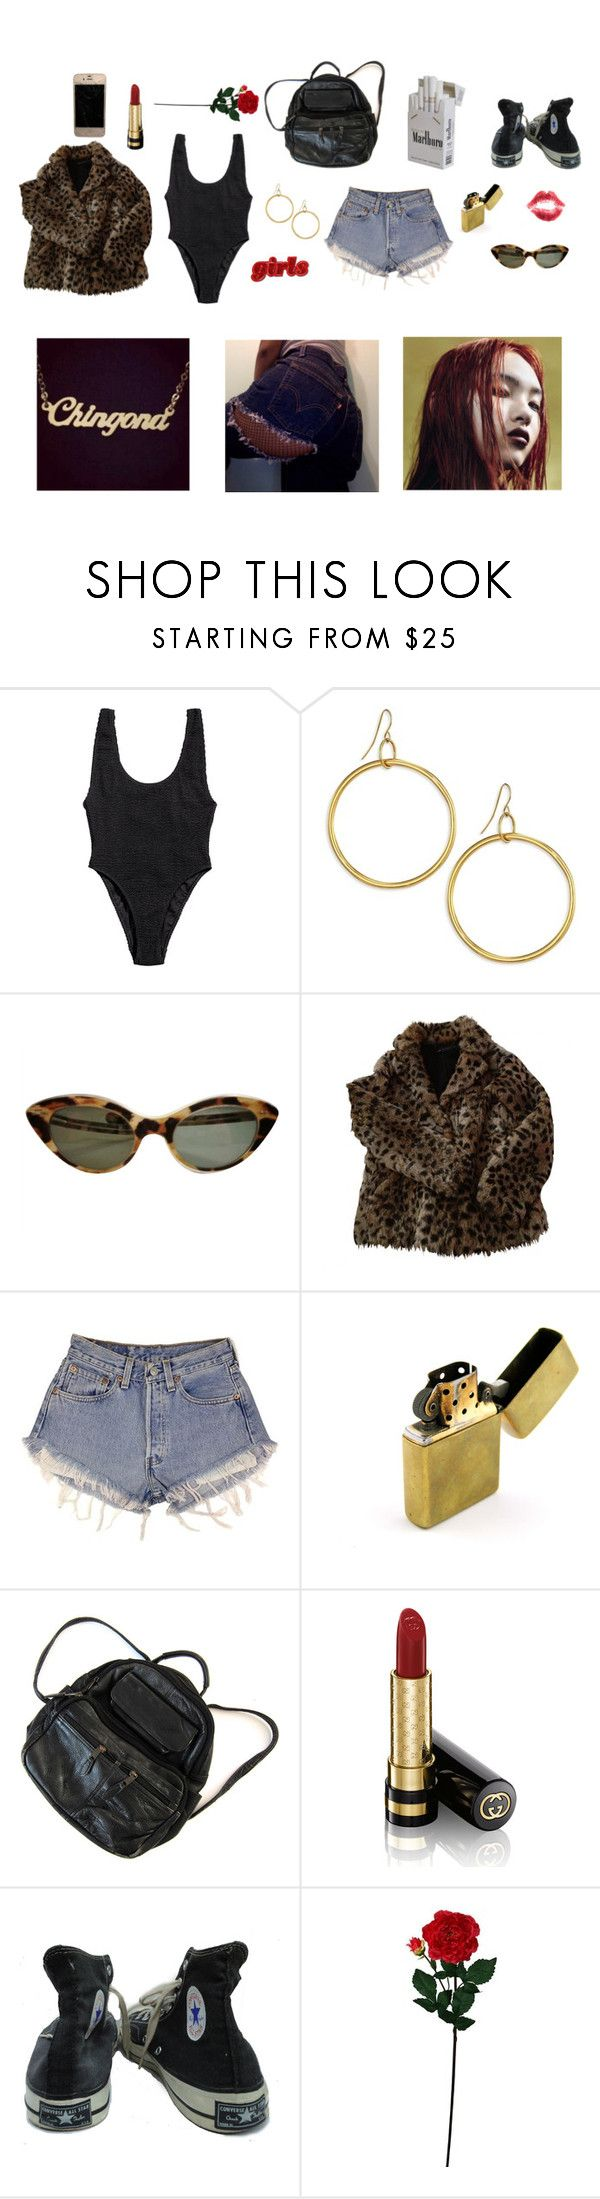 """""""#72 chingona"""" by bbygirrrl ❤ liked on Polyvore featuring H&M, Elizabeth and James, Maje, Levi's, Zippo, Gucci, Converse, Laura Cole, gold and black"""